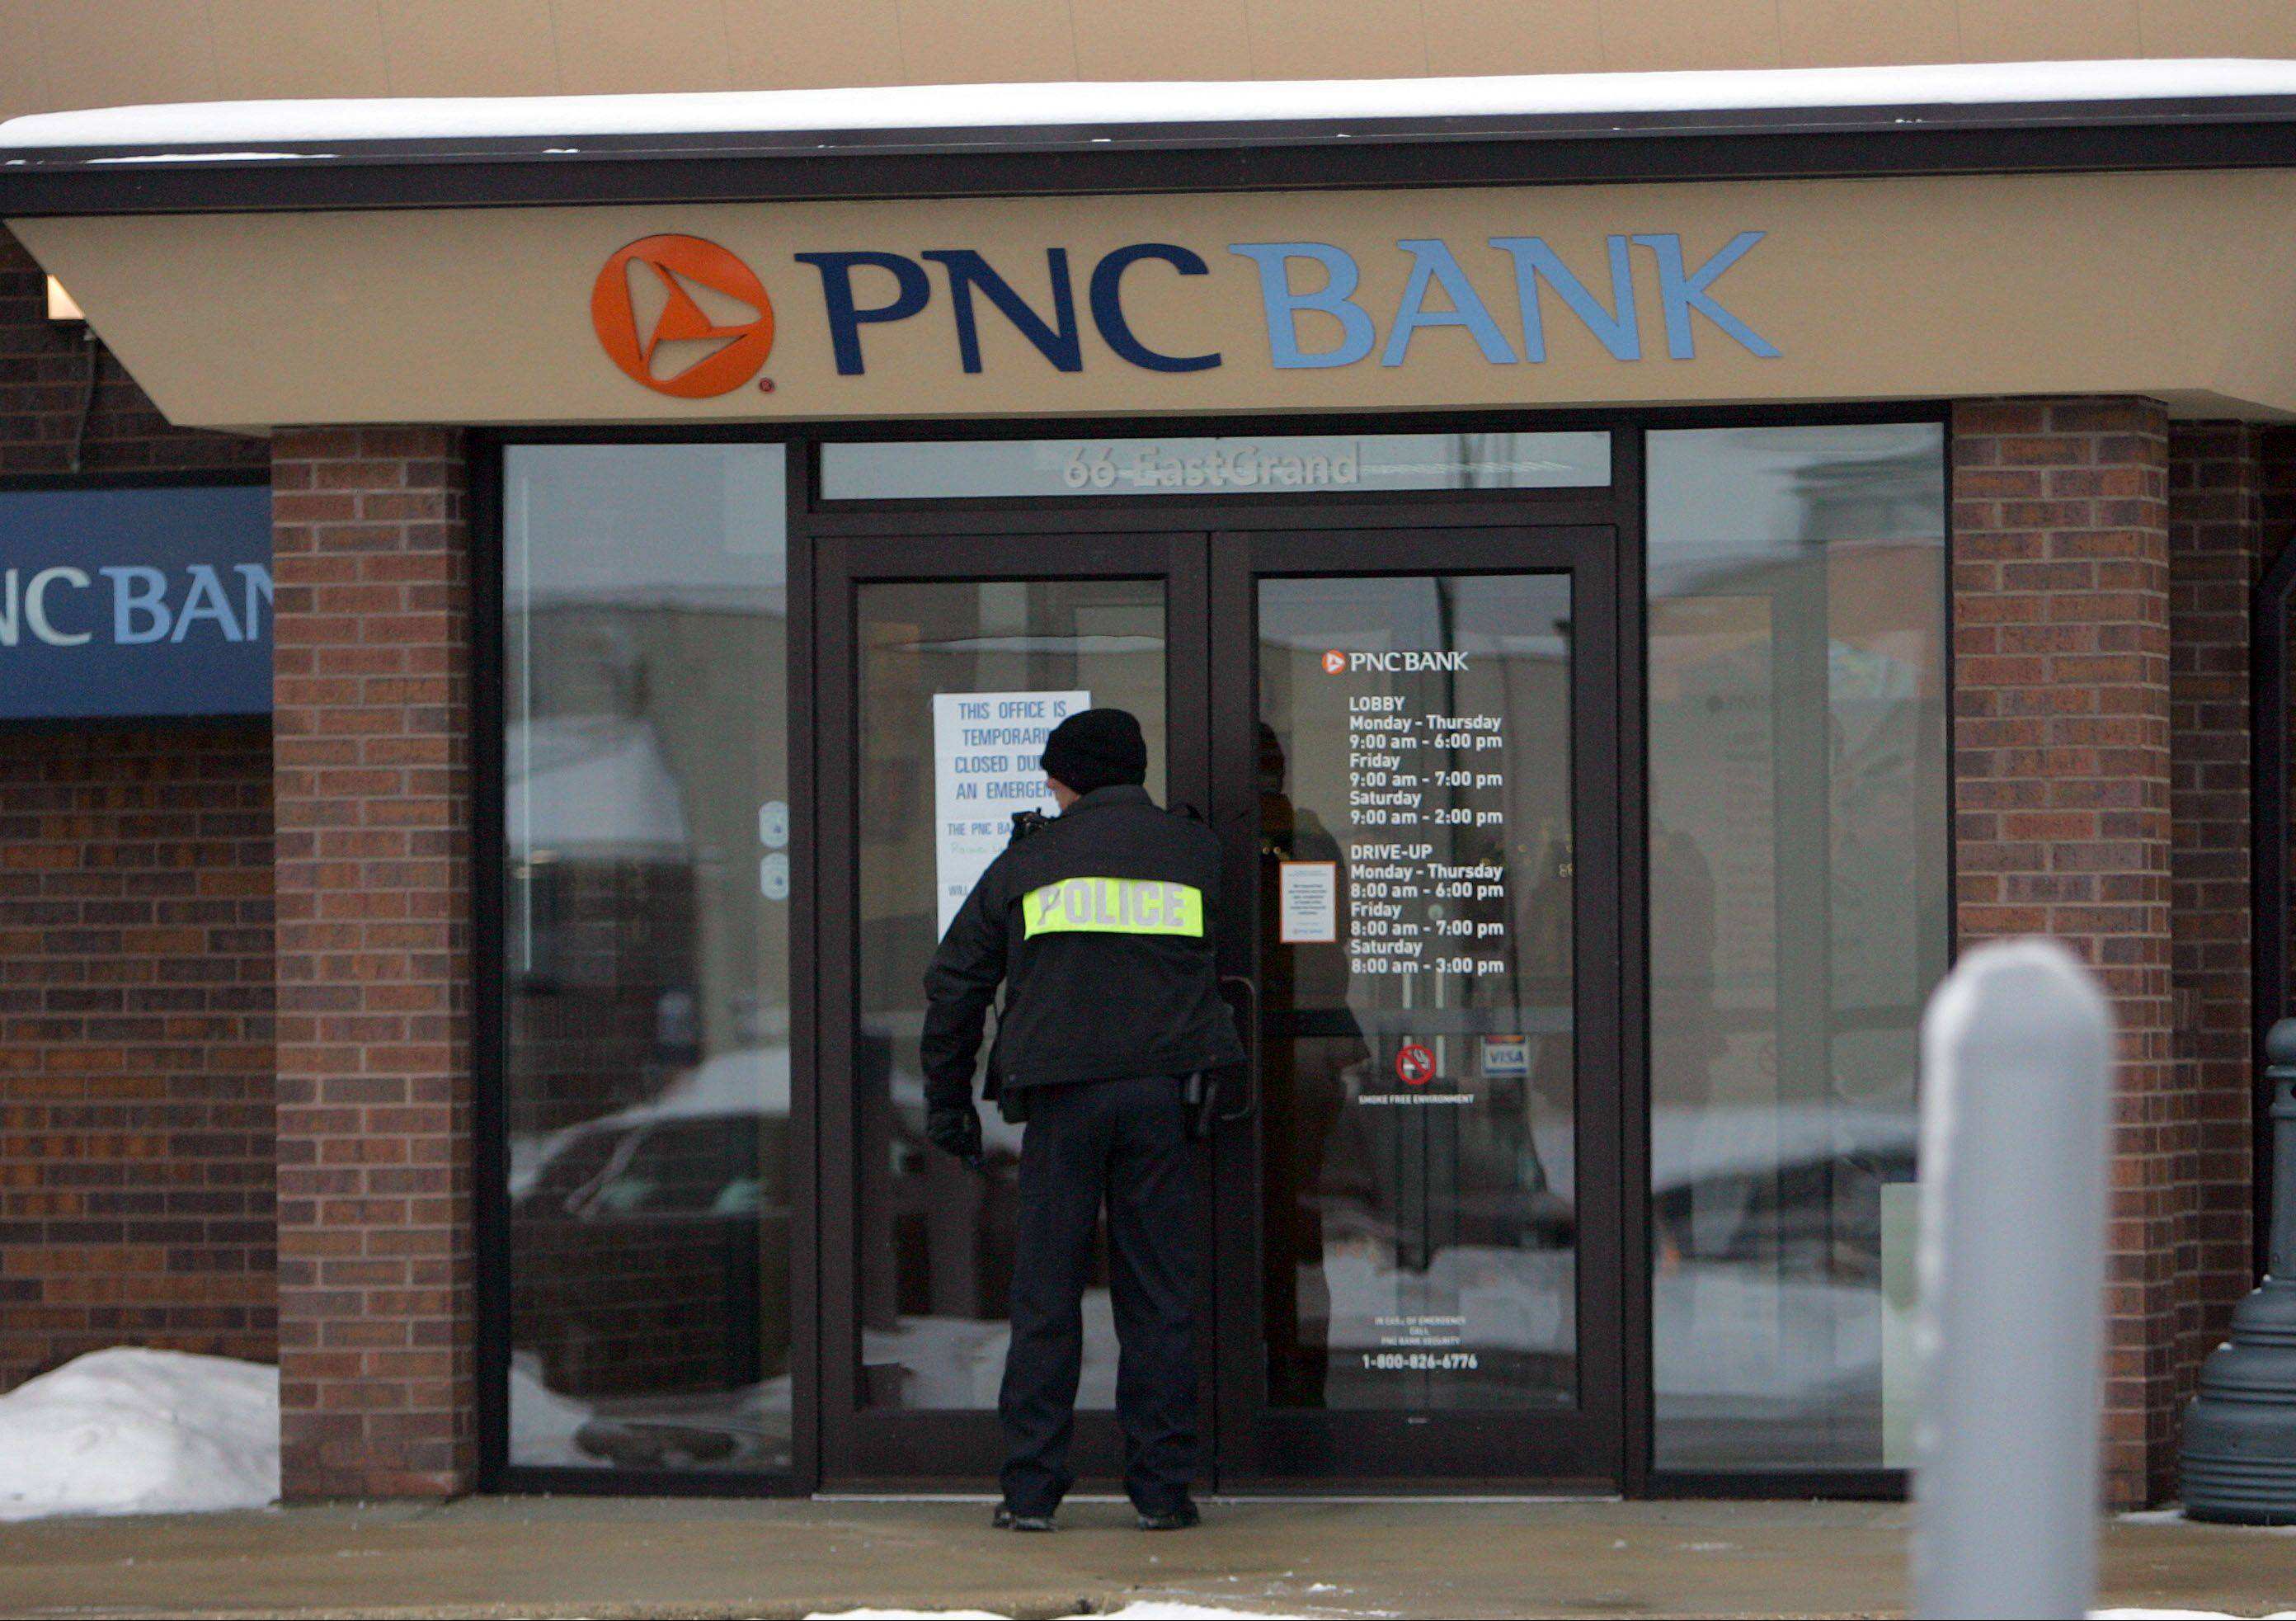 Fox Lake police Lt. Joe Gliniewicz investigates a robbery Tuesday at PNC Bank at 66 E. Grand Ave.